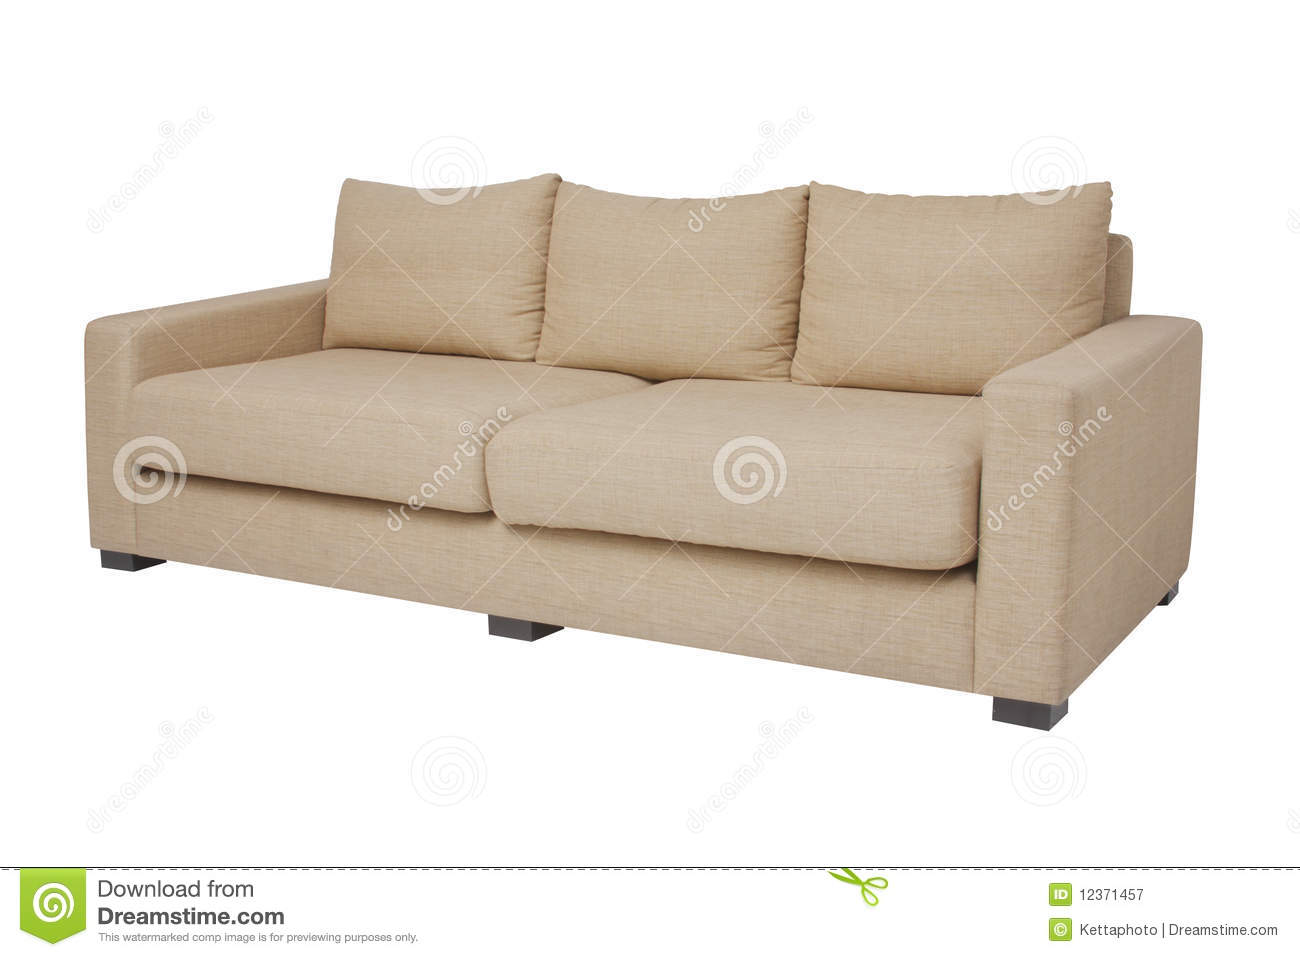 20 degree beige couch on white stock image image 12371457. Black Bedroom Furniture Sets. Home Design Ideas